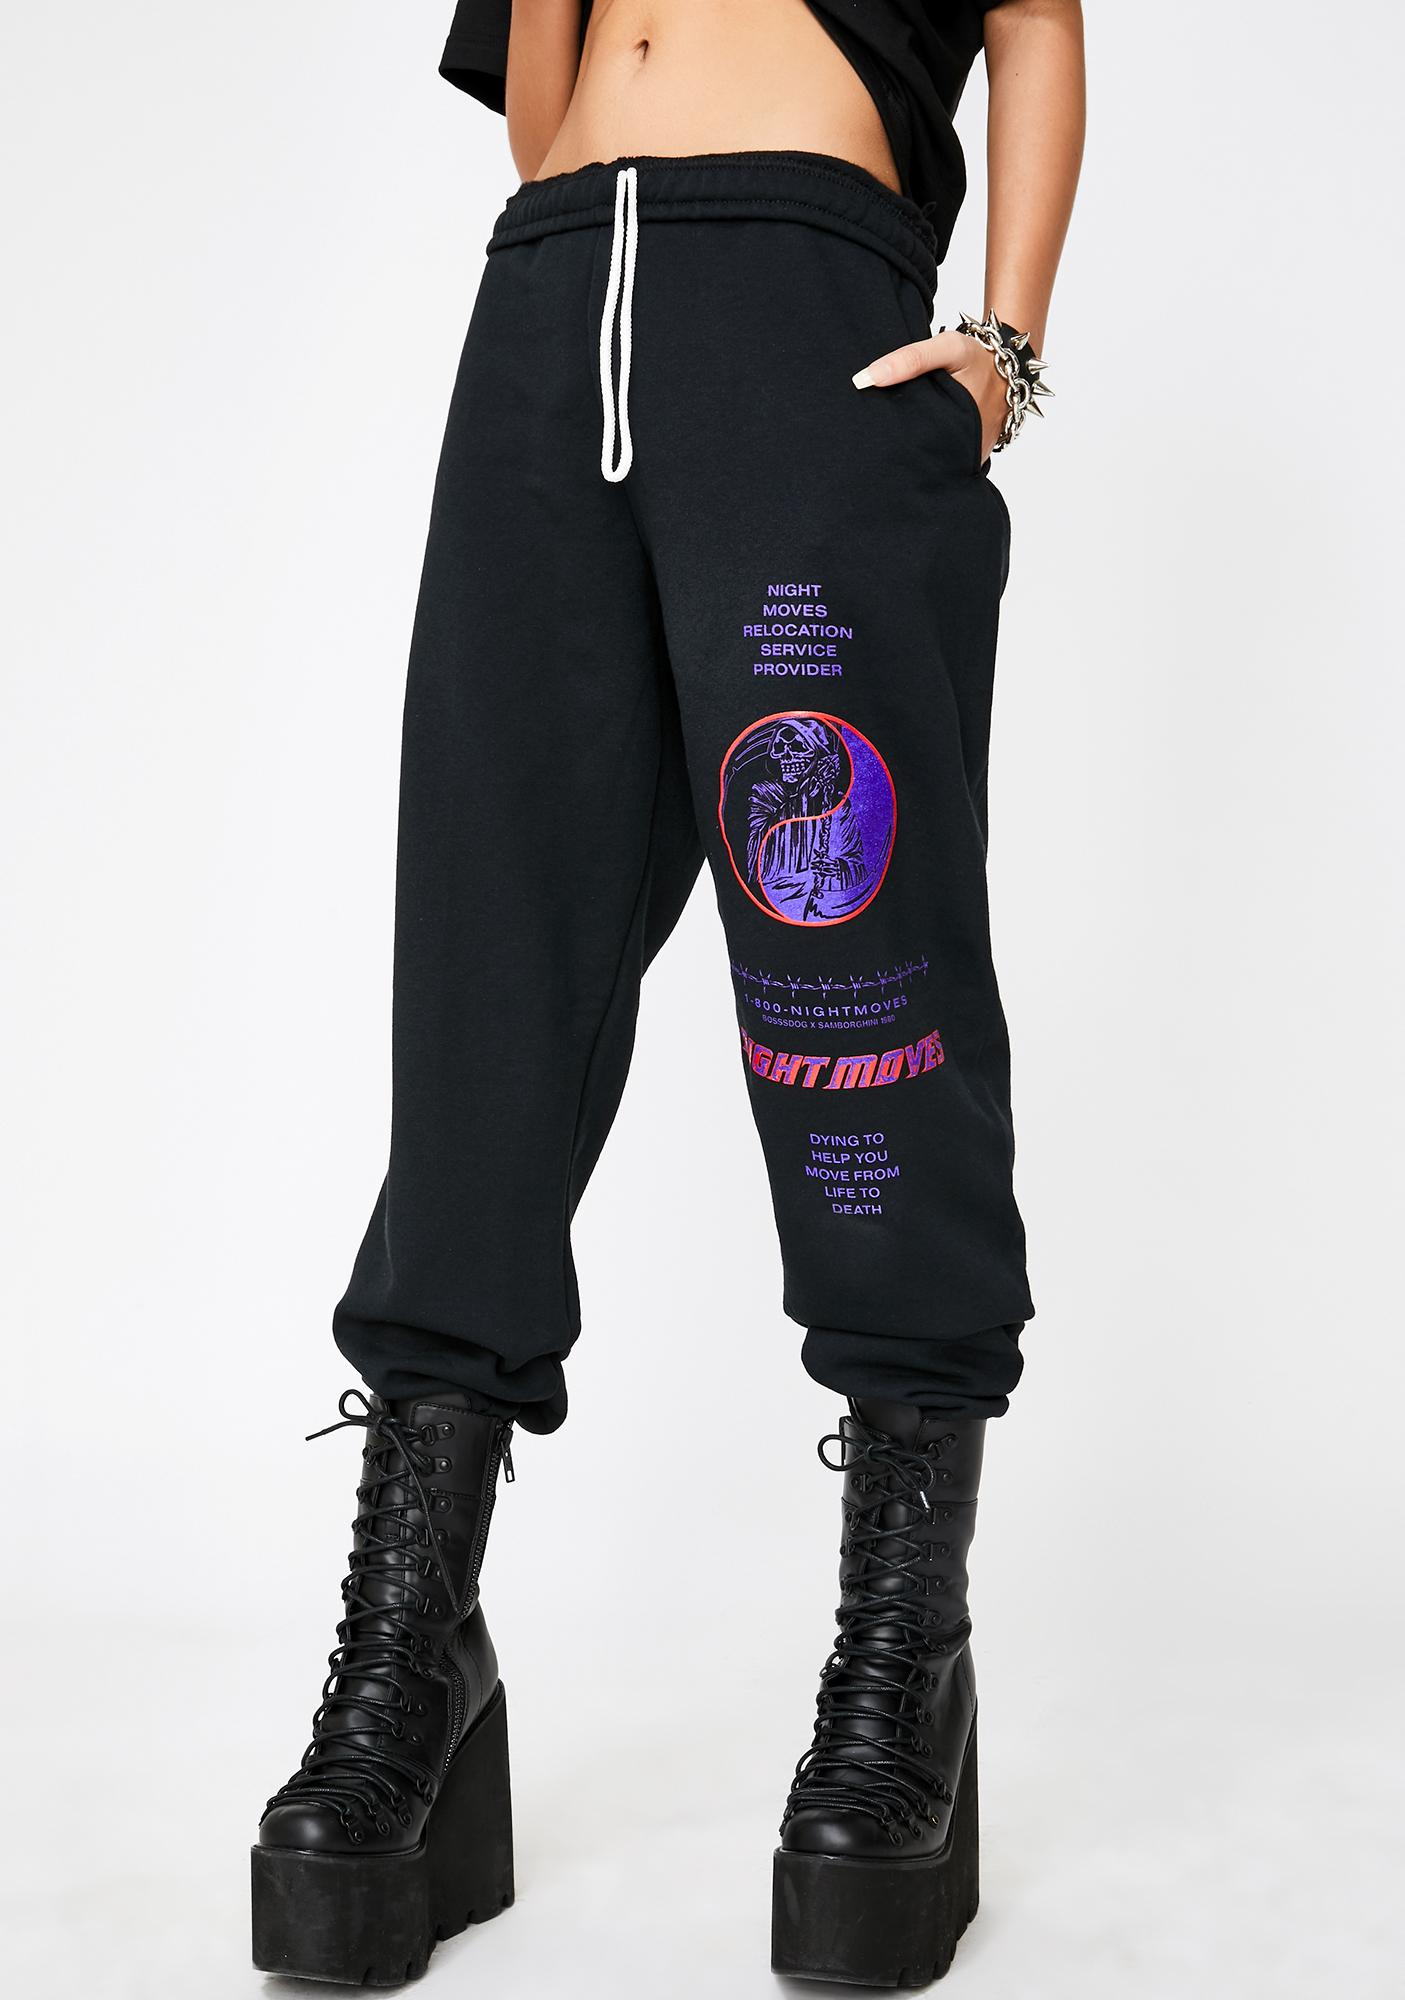 Samborghini x Boss Dog Night Moves Sweatpants